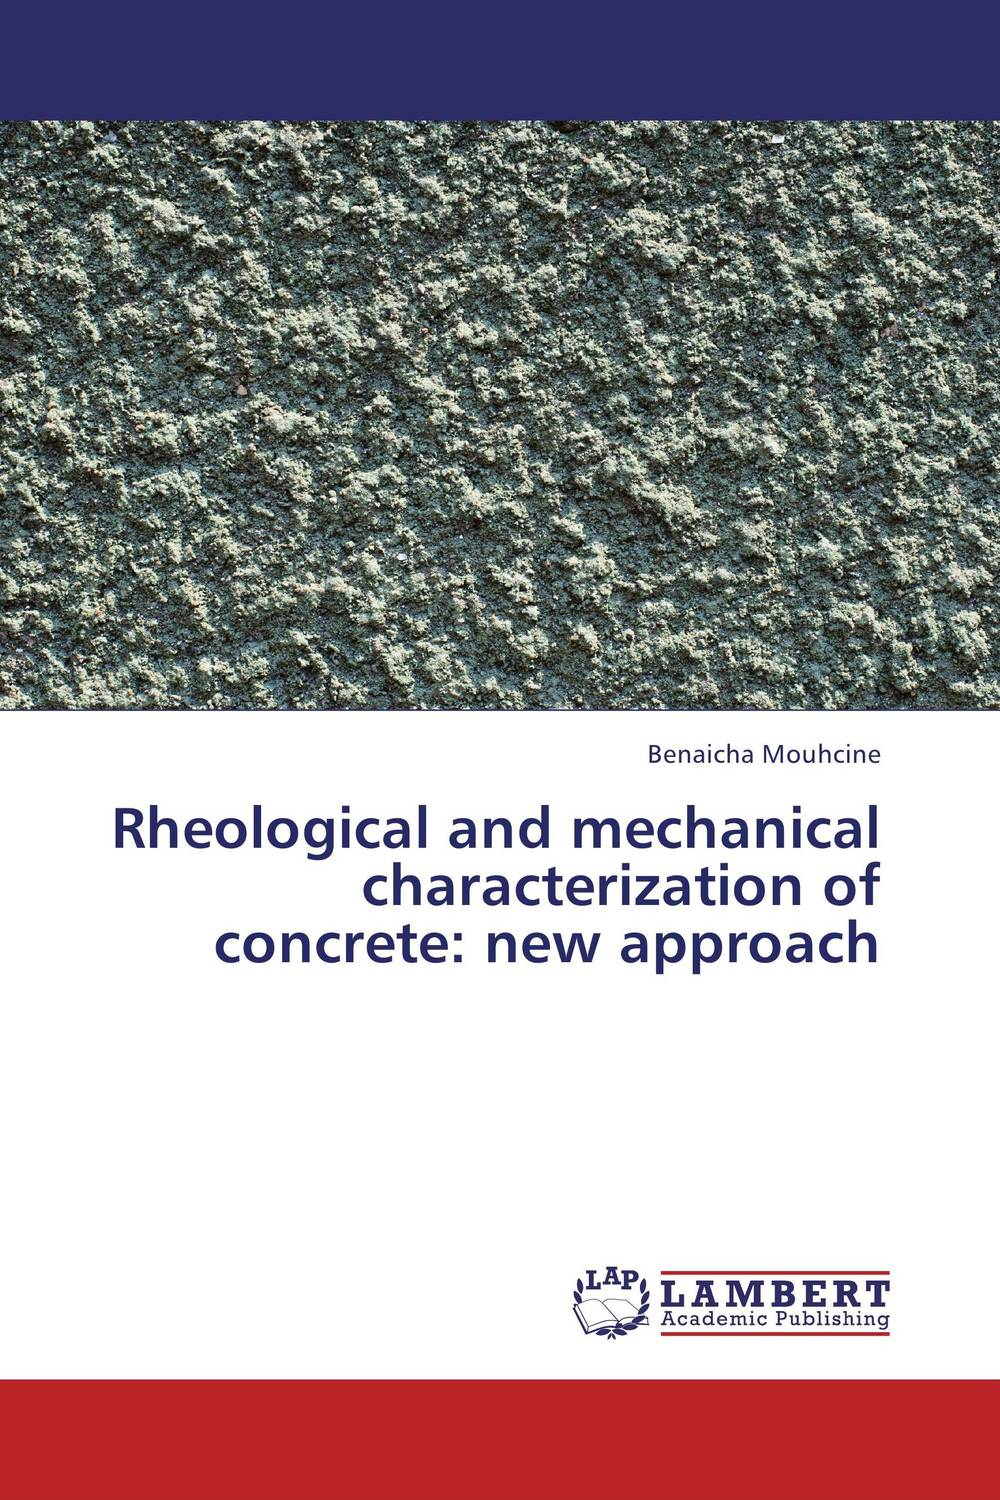 Rheological and mechanical characterization of concrete: new approach a concrete approach to abstract algebra from the integers to the insolvability of the quintic